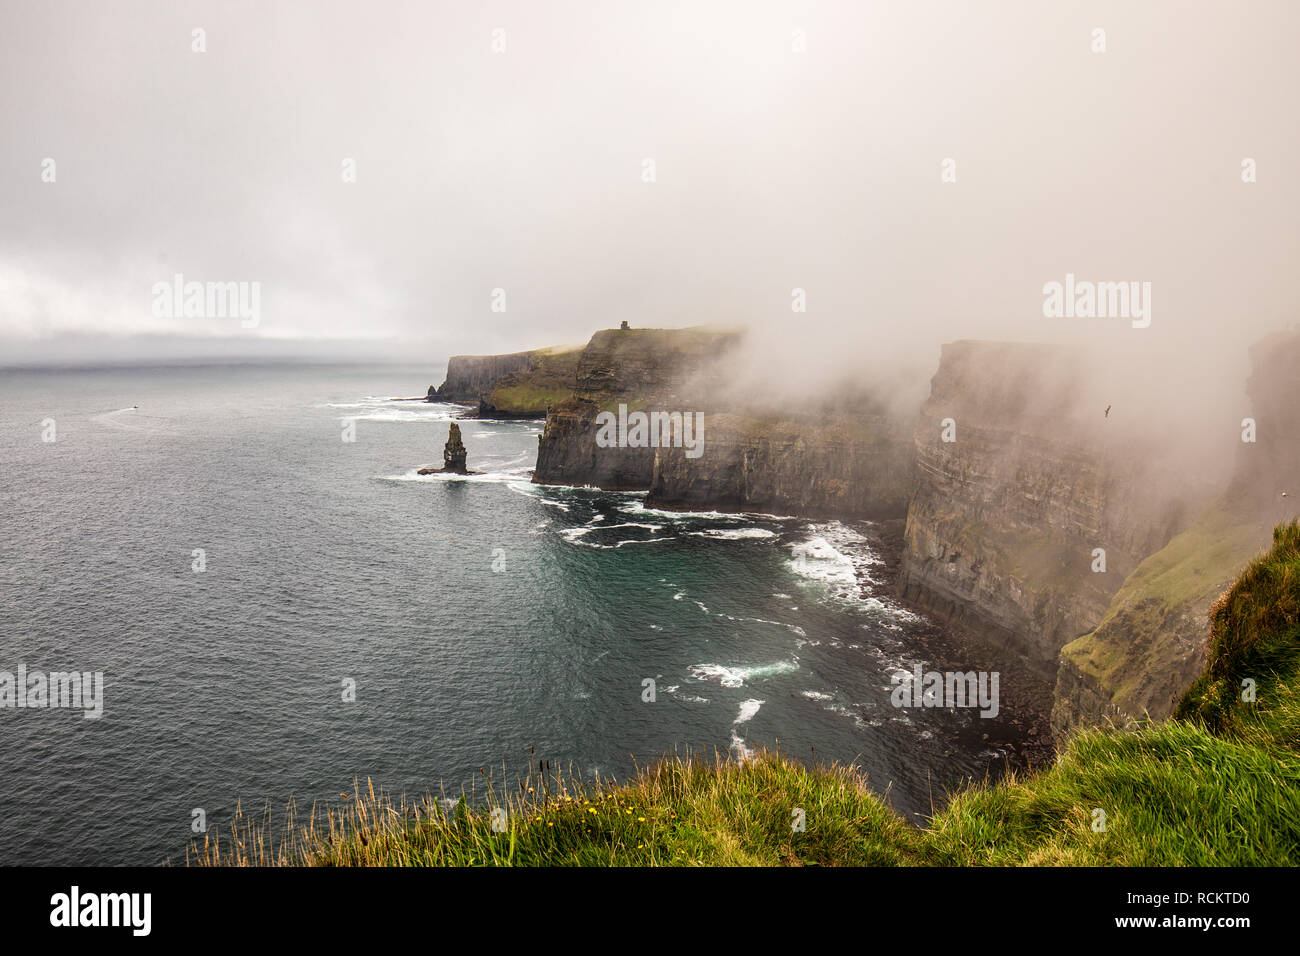 Foggy day at  the Cliffs of Moher, Ireland - Stock Image